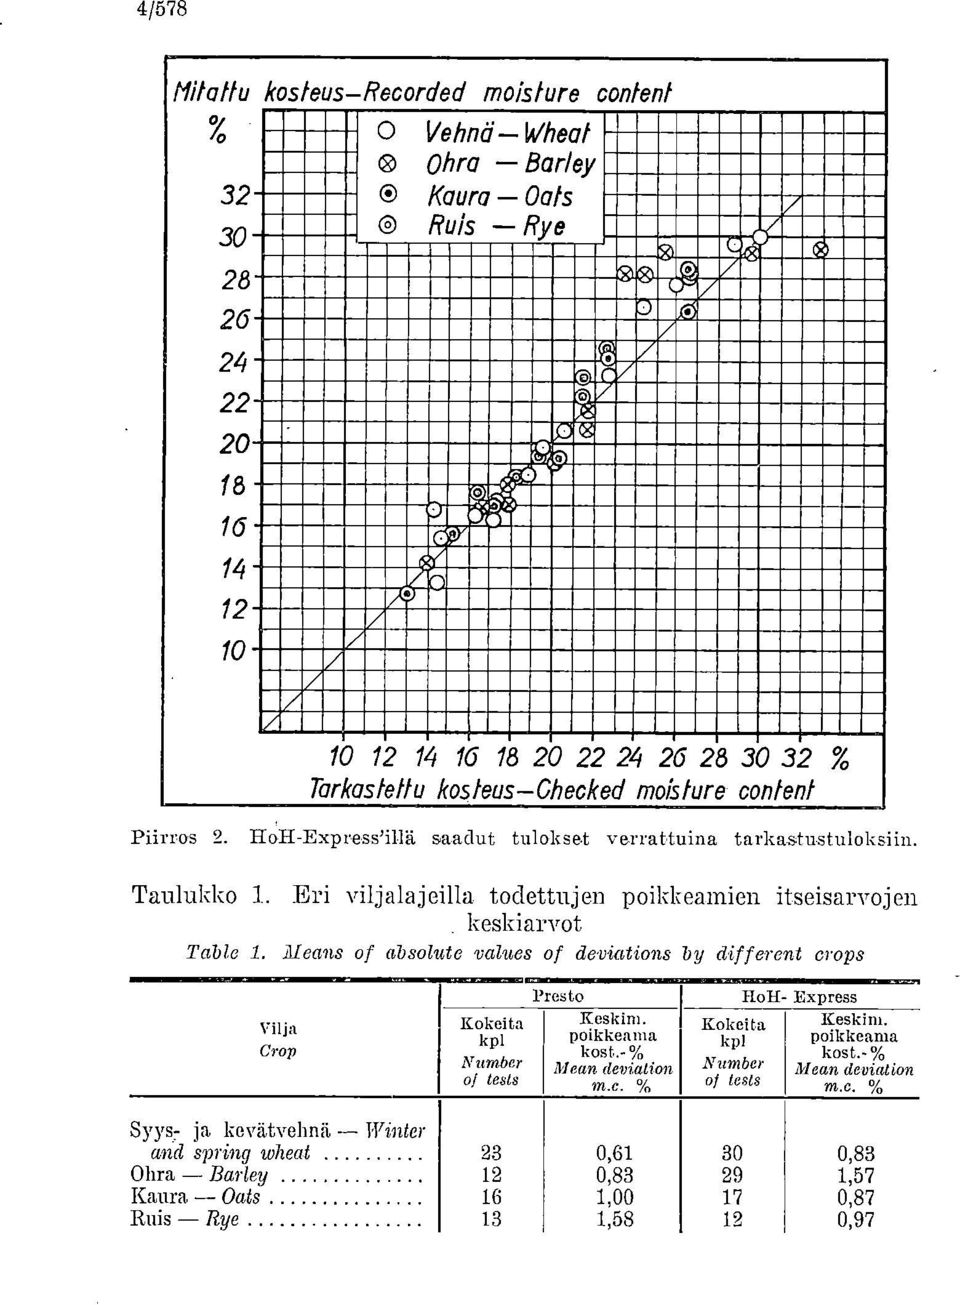 Eri viljalajeilla todettujen poikkeamien itseisarvojen keskiarvot Taide 1. Means of absolute values of deviations by dif ferent erops Vilja Crop Kokeita kpl Number tests 1 resto Keskim.